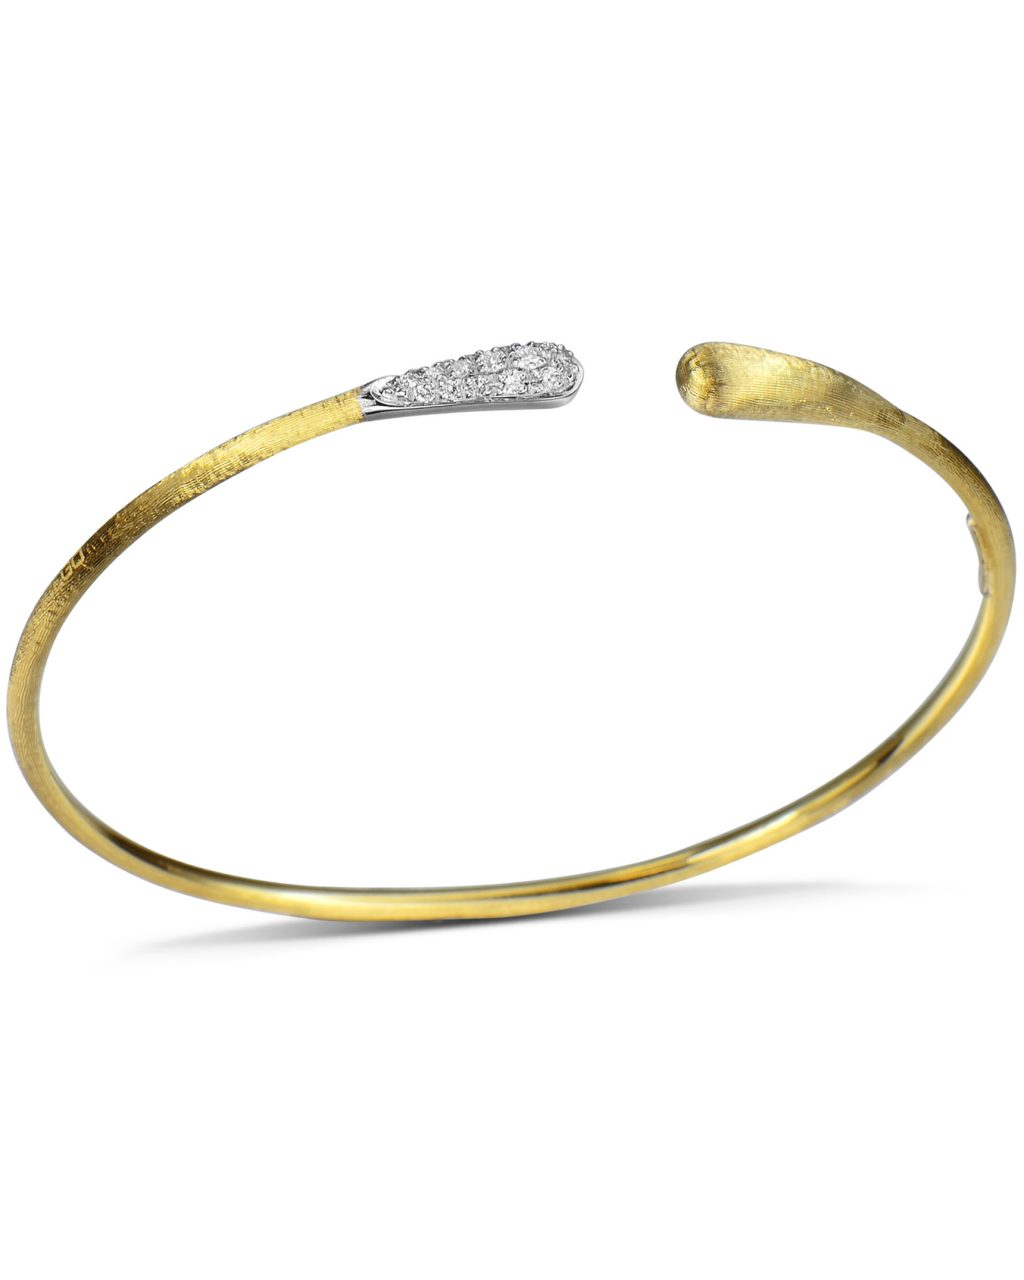 Yellow Gold Lucia Bangle by Marco Bicego